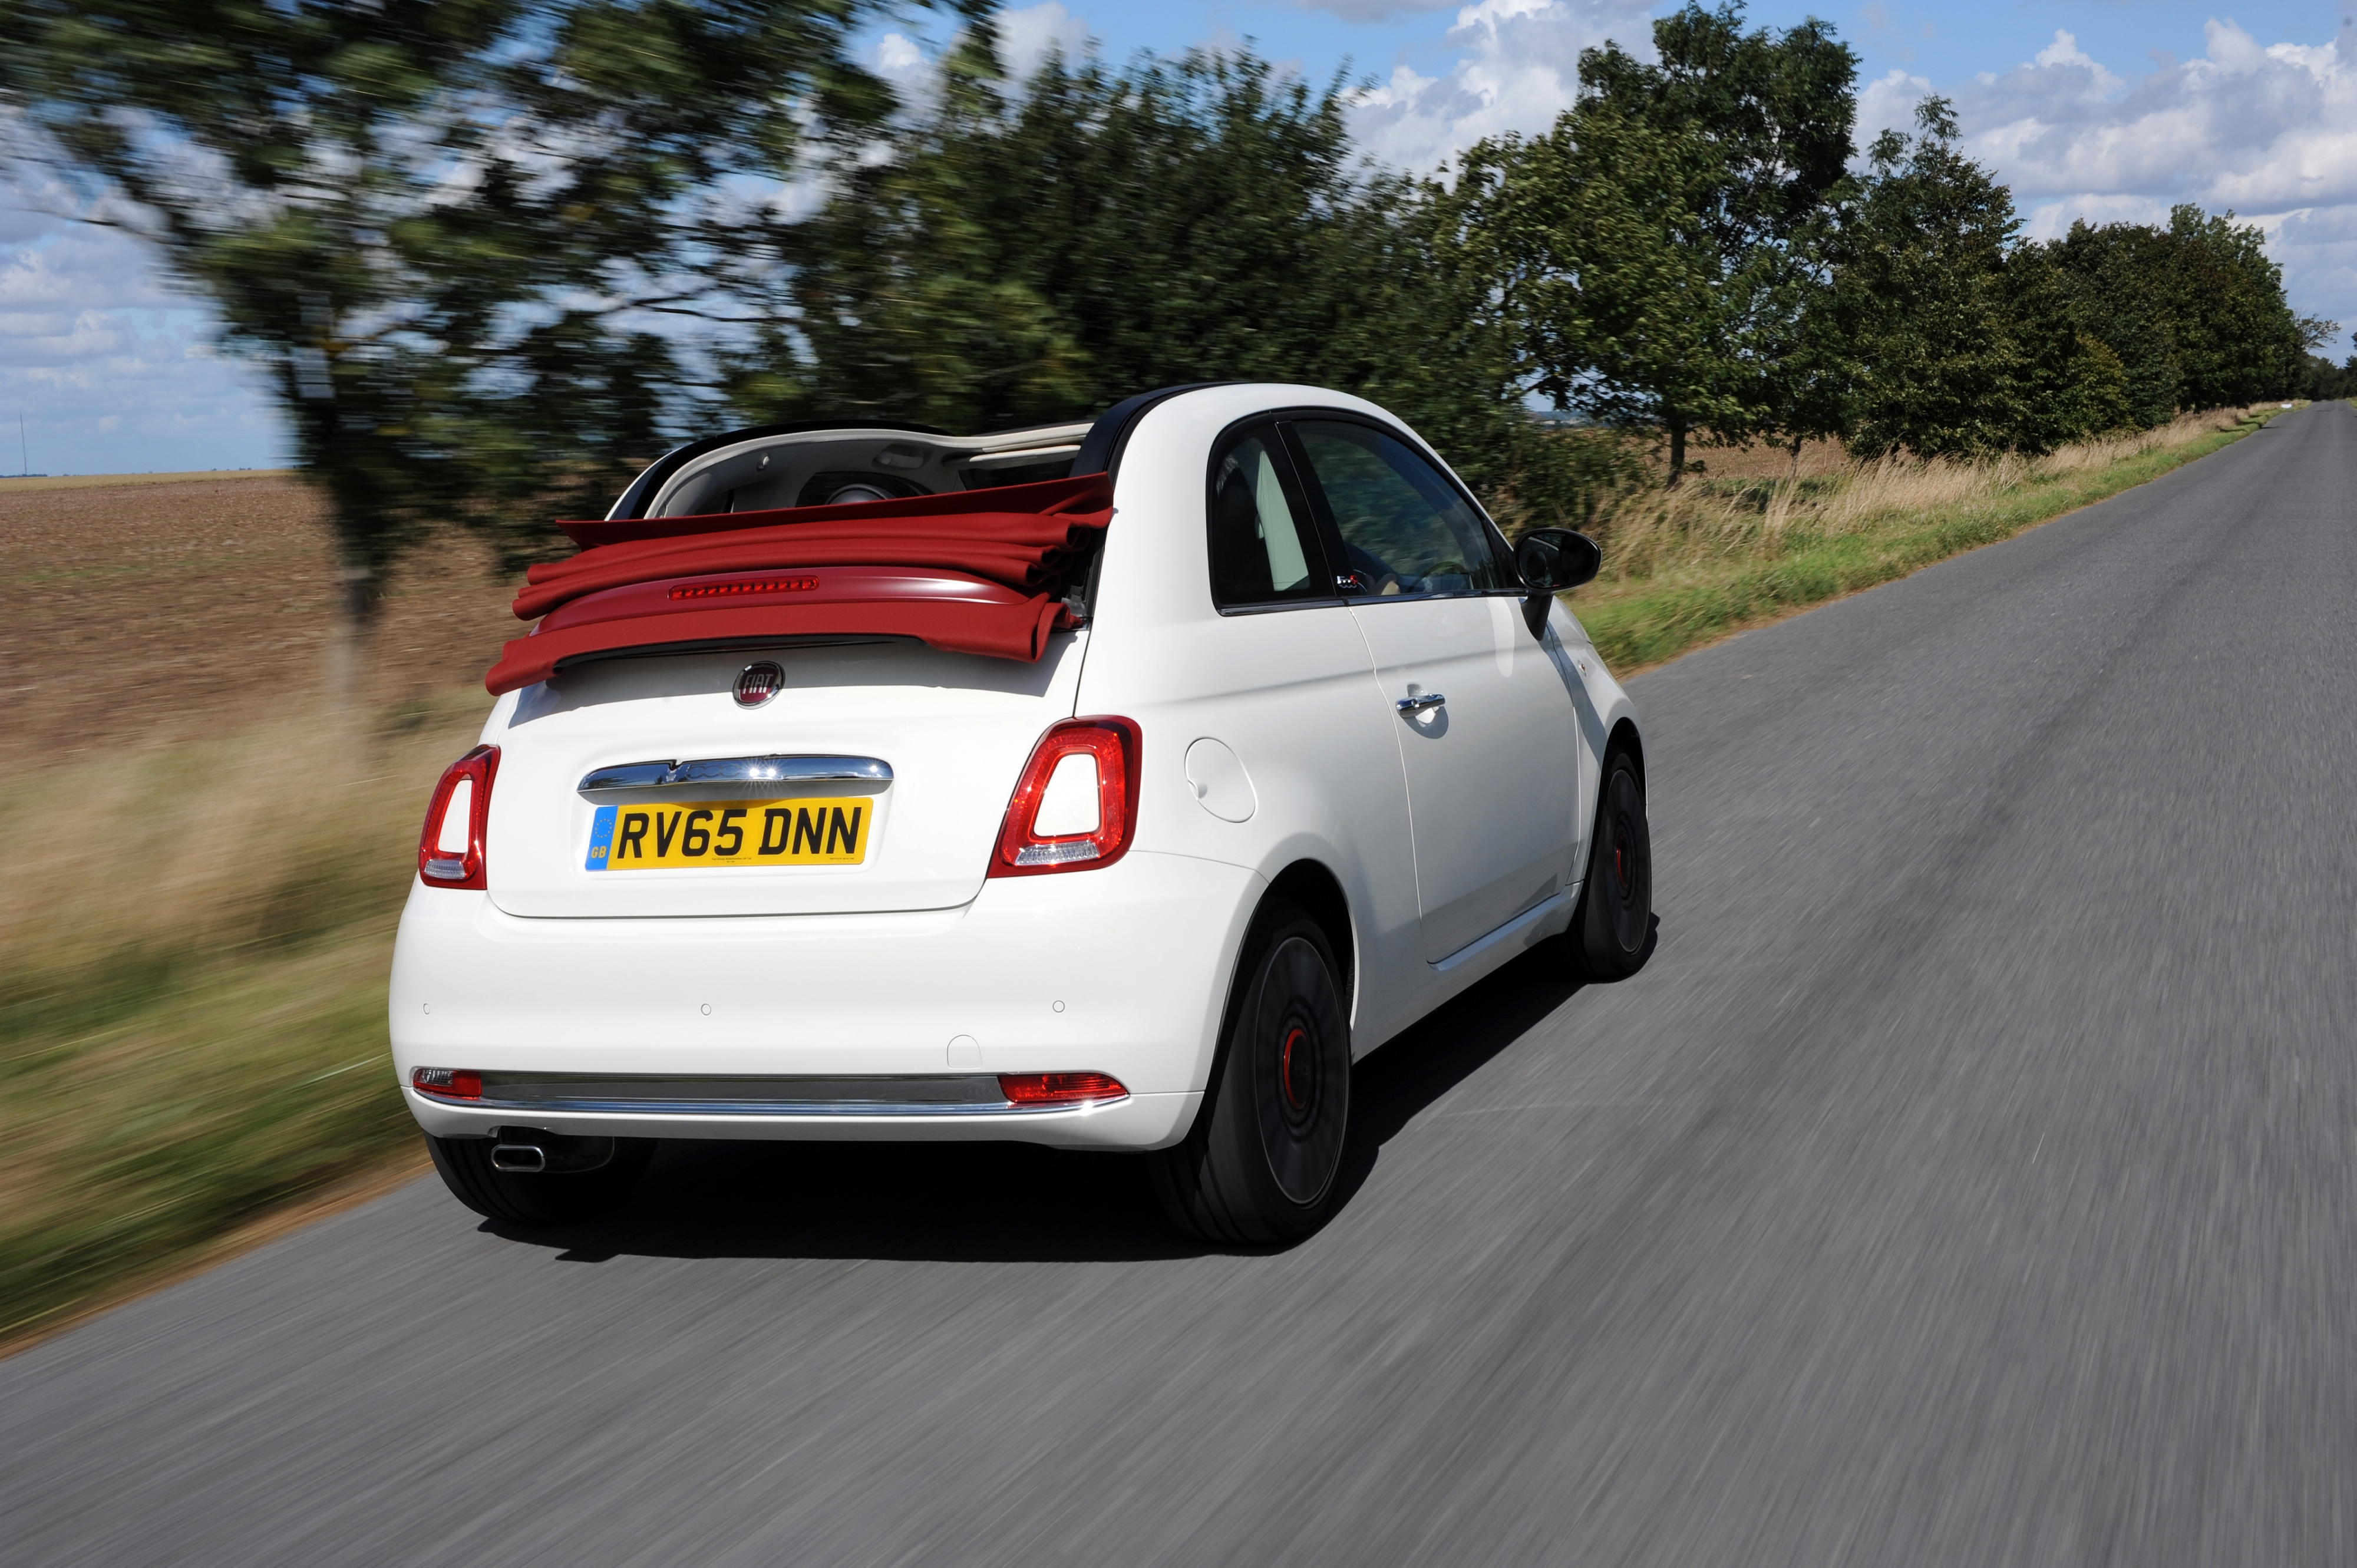 new fiat 500 goes on sale in the uk press fiat group automobiles press. Black Bedroom Furniture Sets. Home Design Ideas